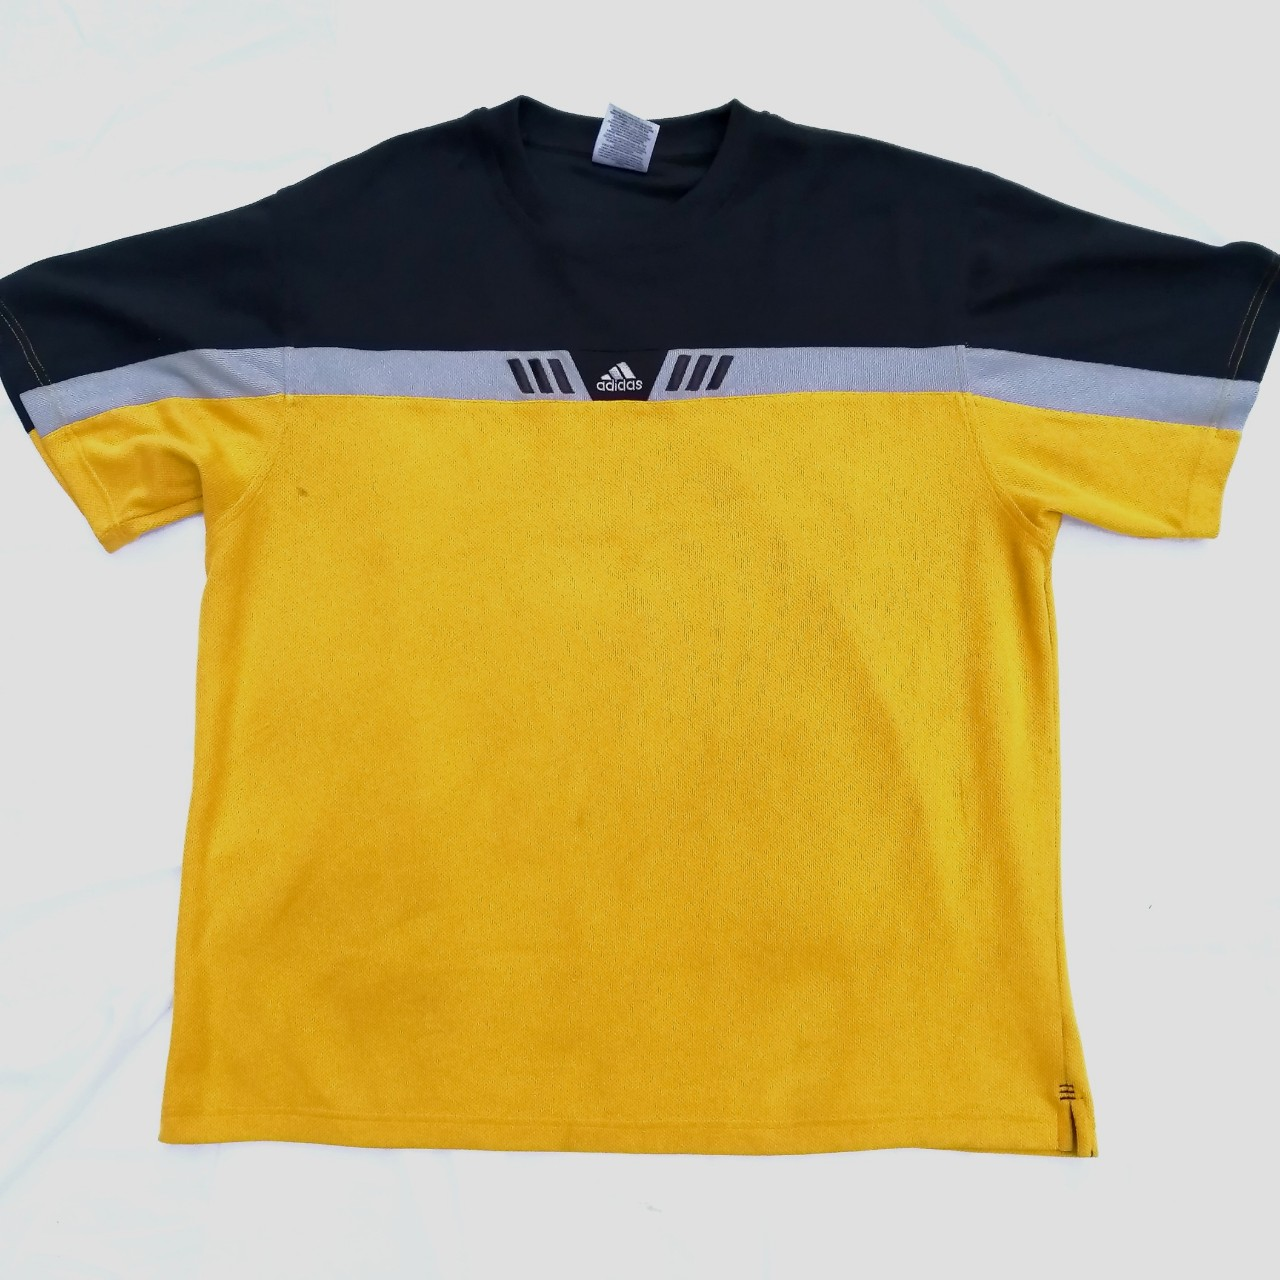 Product Image 1 - Adidas contrast color jersey shirt Men's